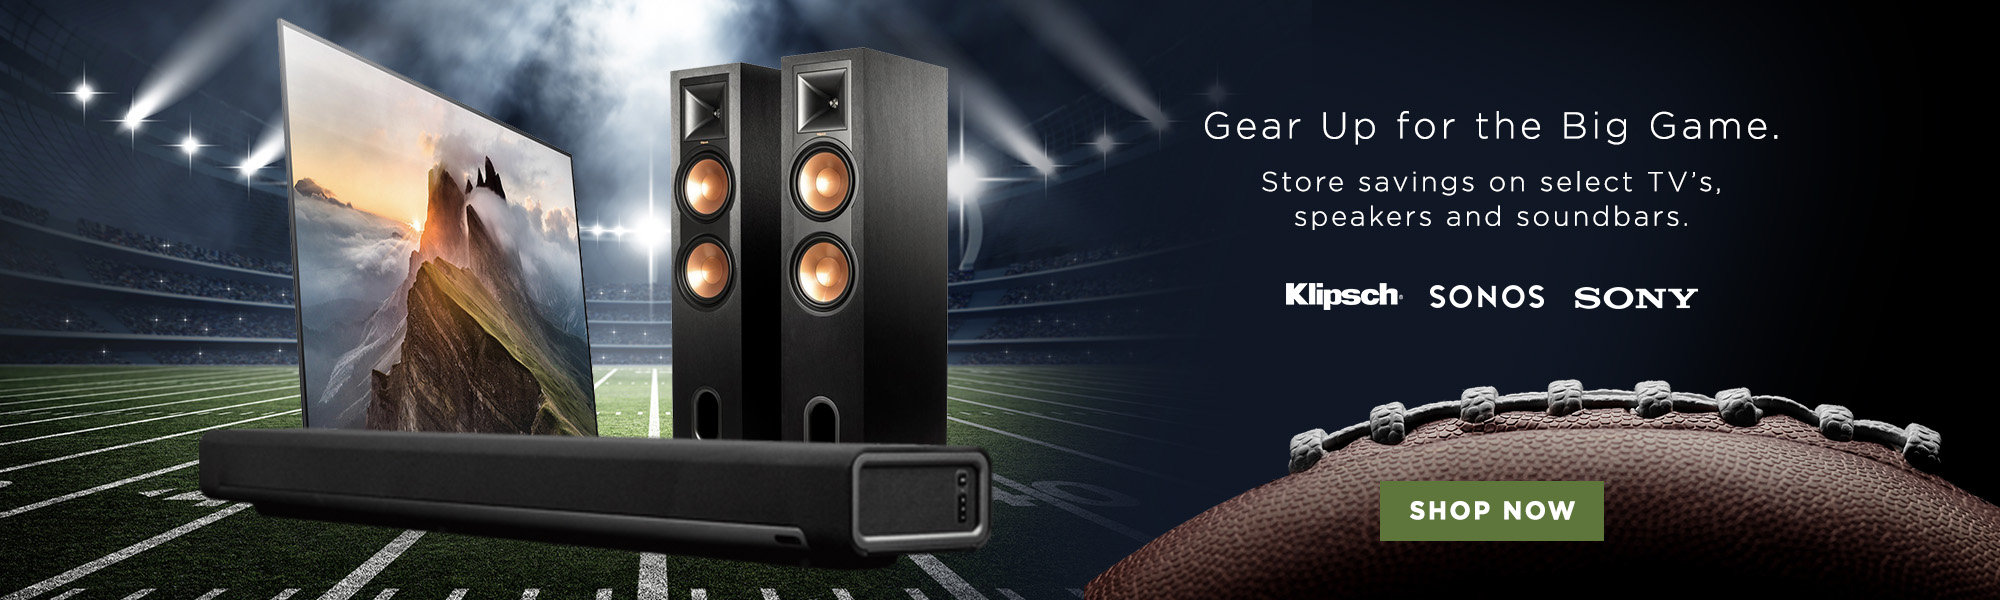 Gear up for the Big Game